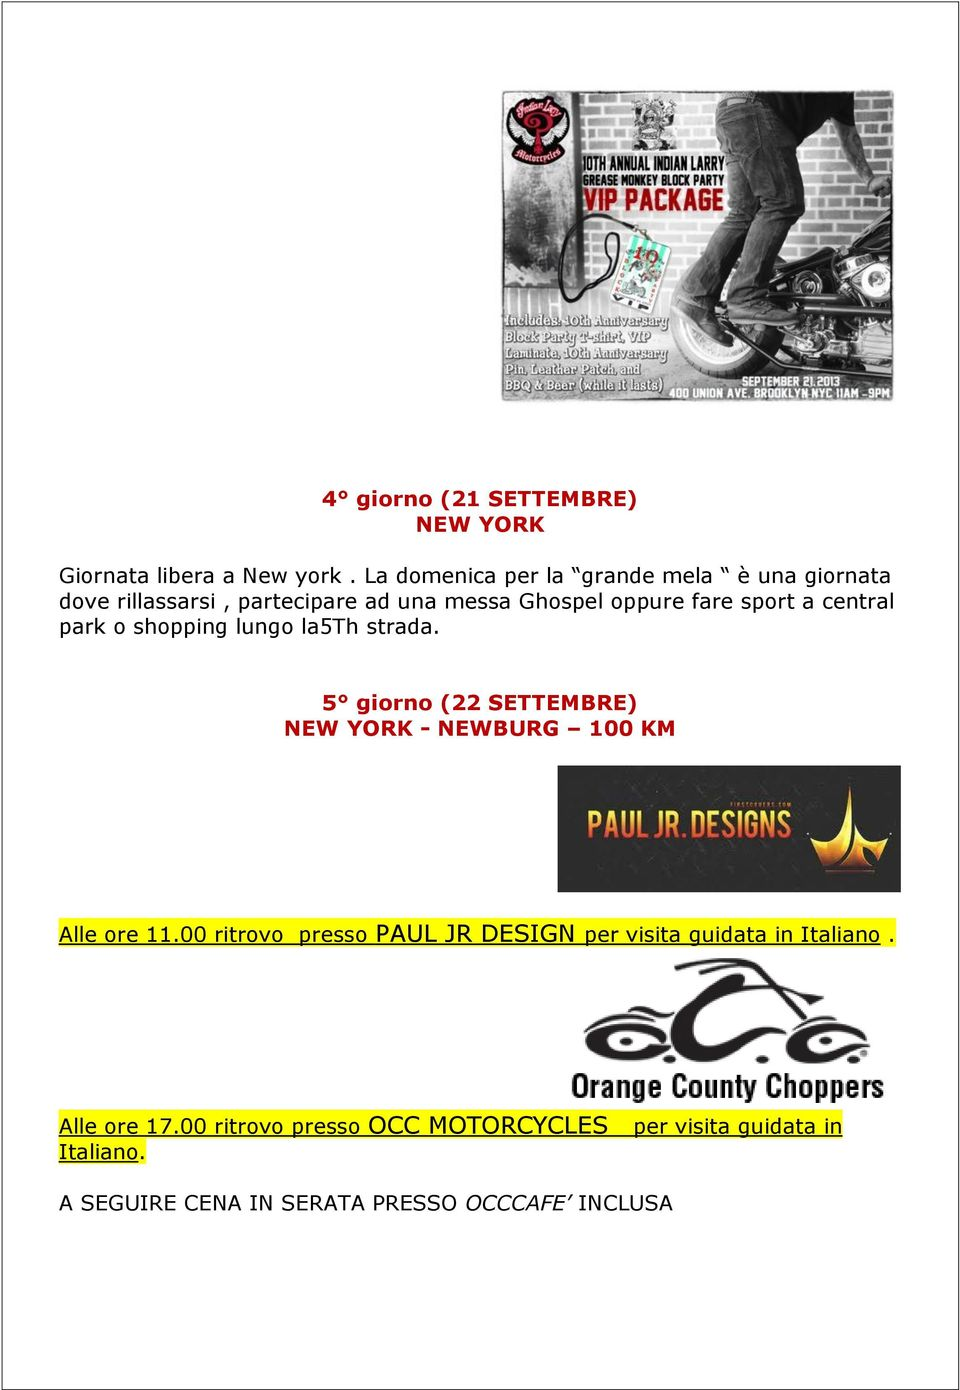 central park o shopping lungo la5th strada. 5 giorno (22 SETTEMBRE) NEW YORK - NEWBURG 100 KM Alle ore 11.